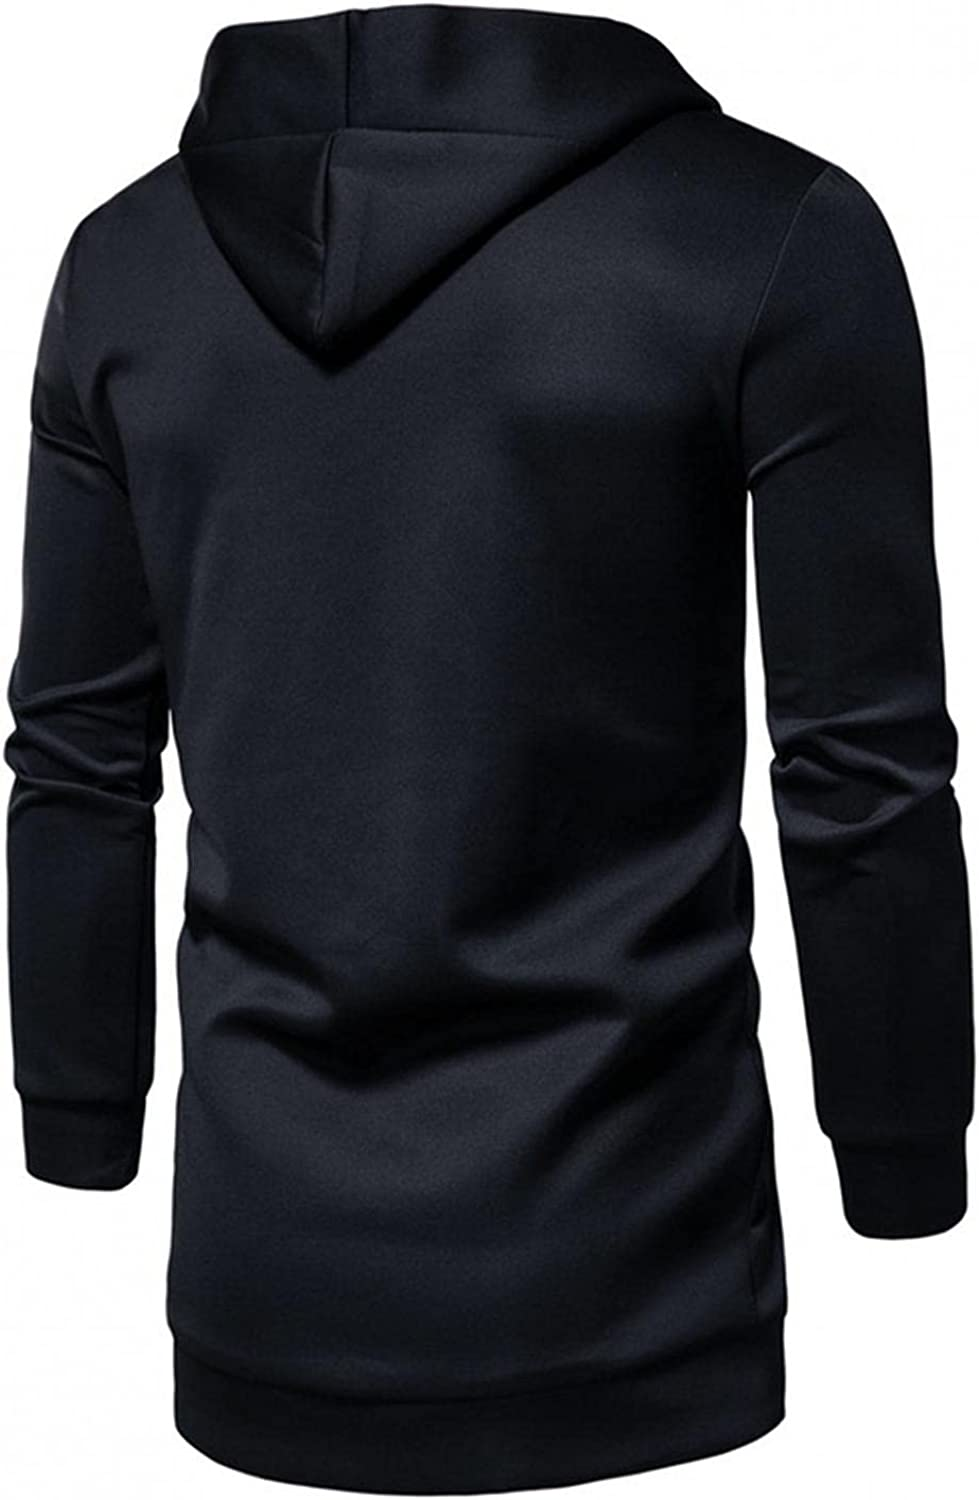 Clearance Trendy Men's Hooded Solid Trench Coat Jacket Long Cardigan Casual Long Sleeve Outwear